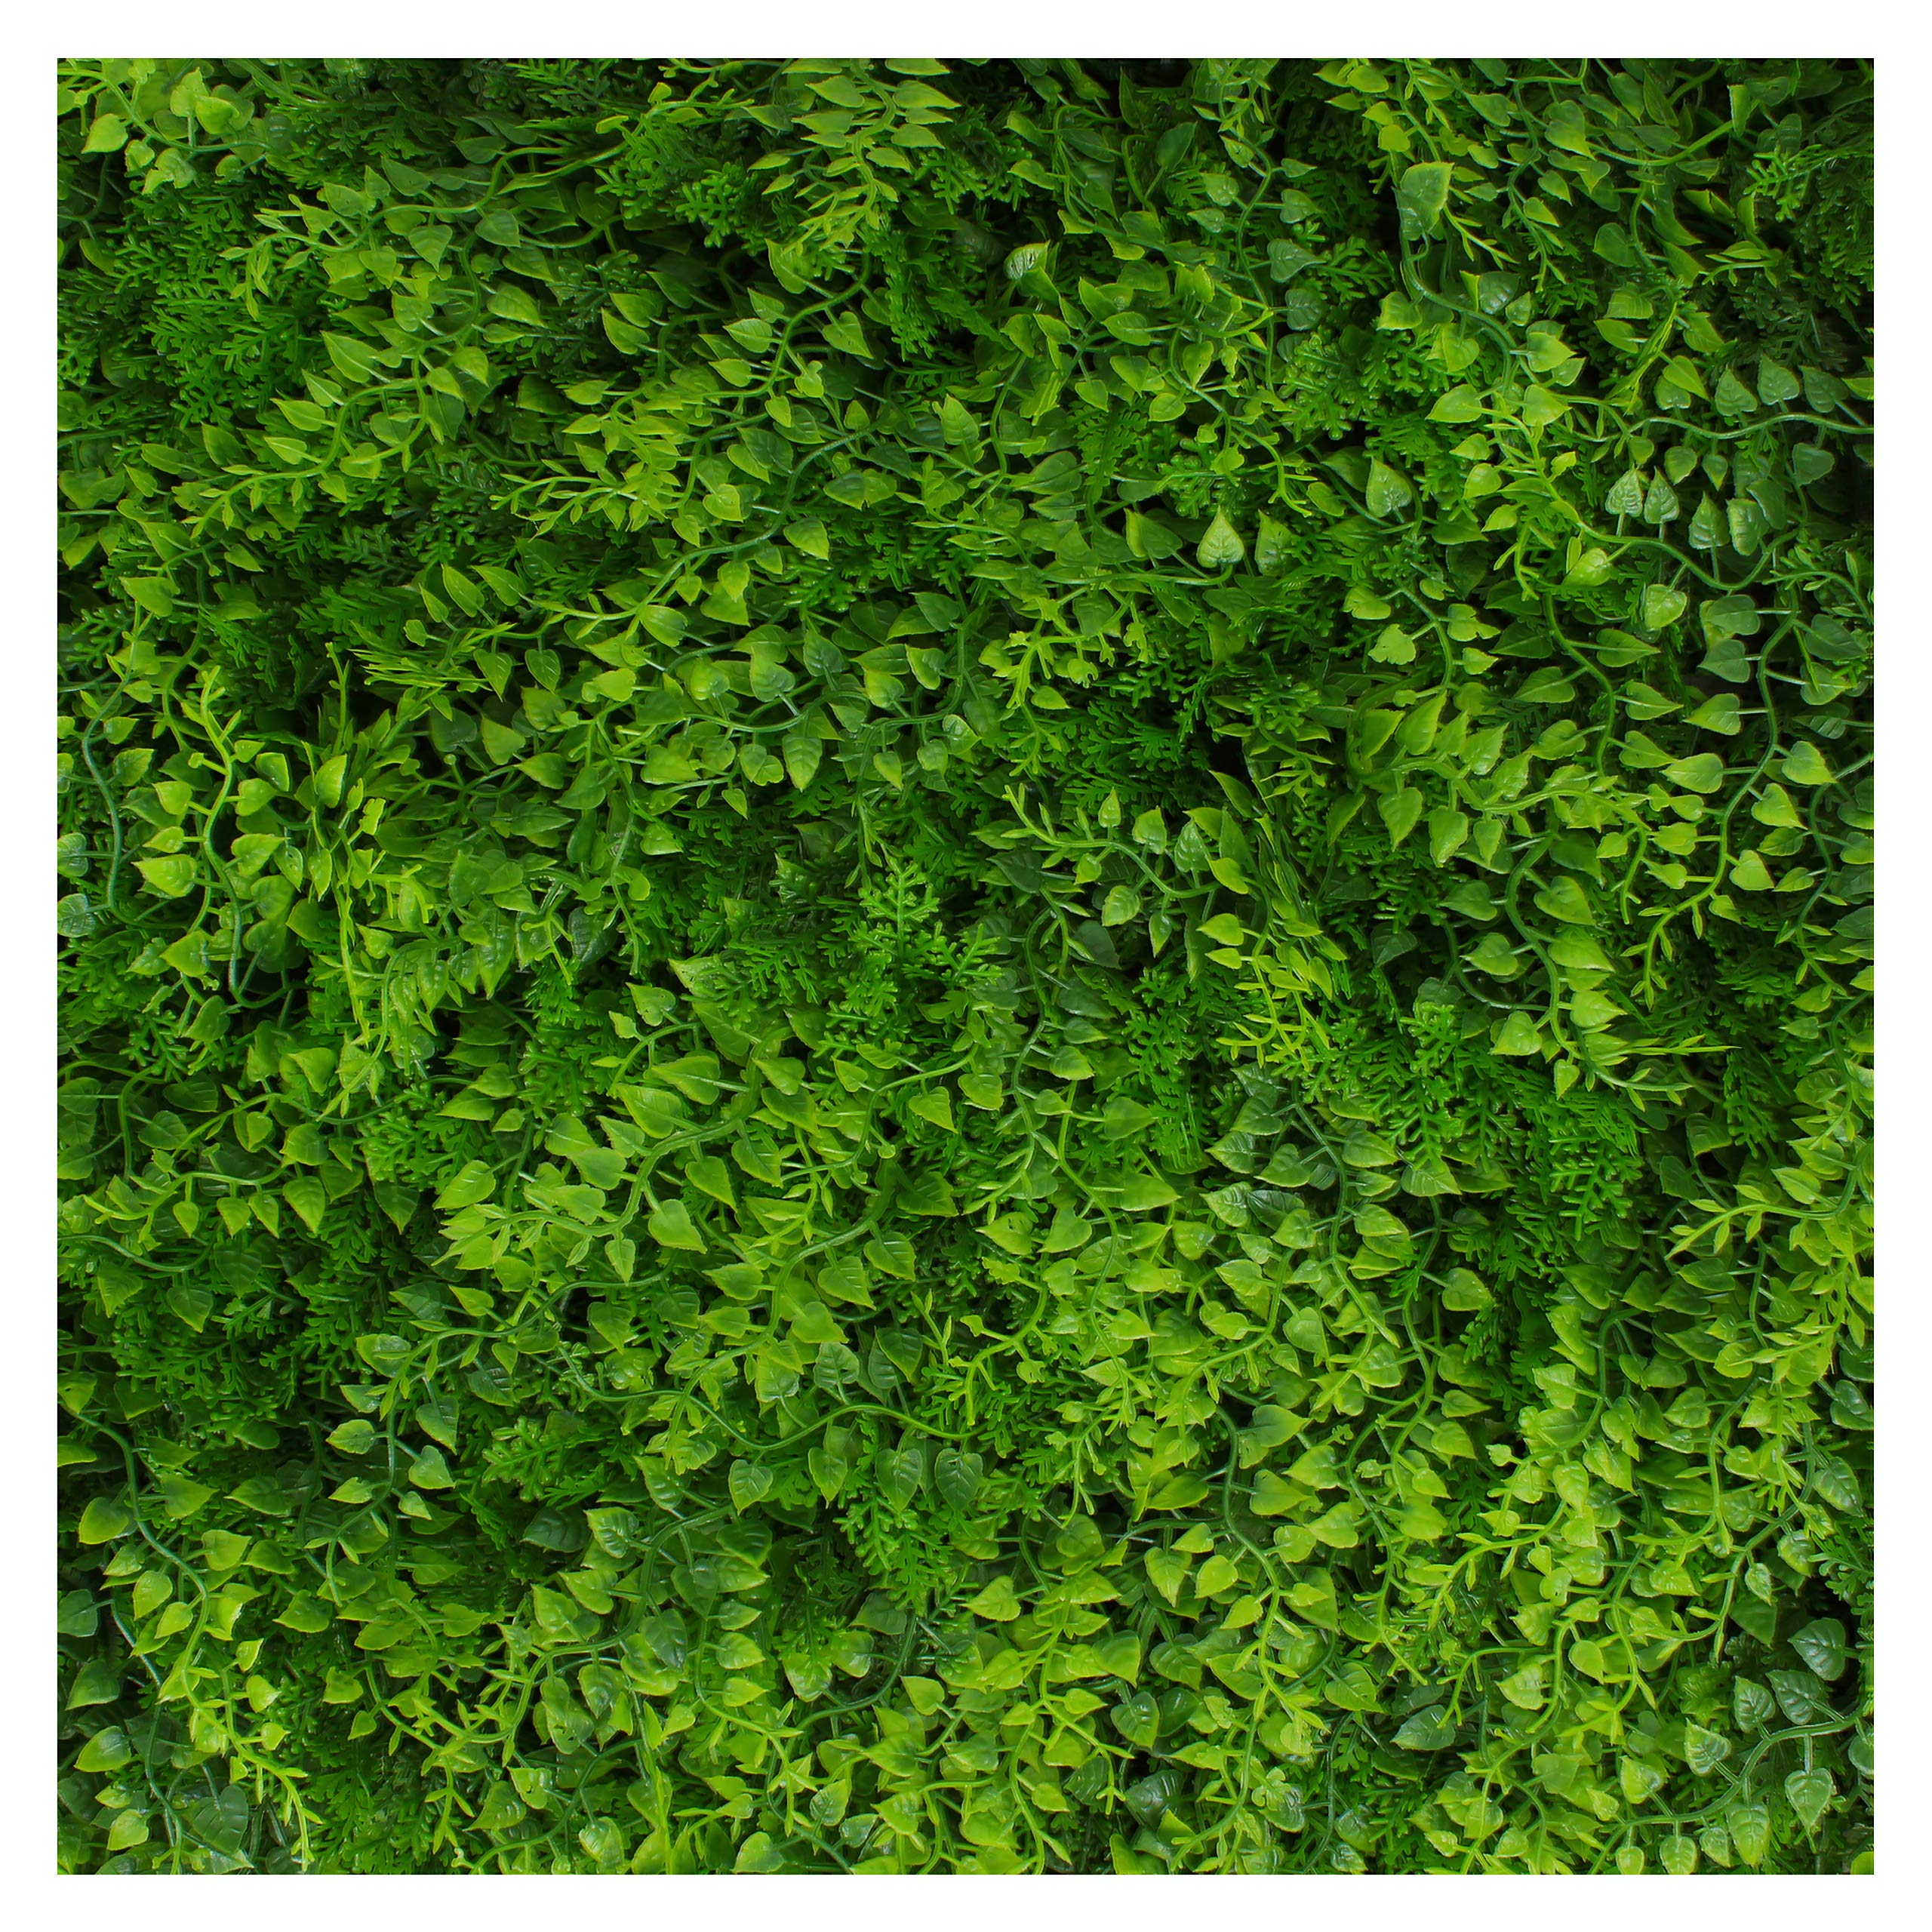 Artificial Hedge - Outdoor Artificial Plant - Great Fern and Ivy Substitute - Sound Diffuser Privacy Fence Hedge - Topiary Greenery Panels (4, Juniper)